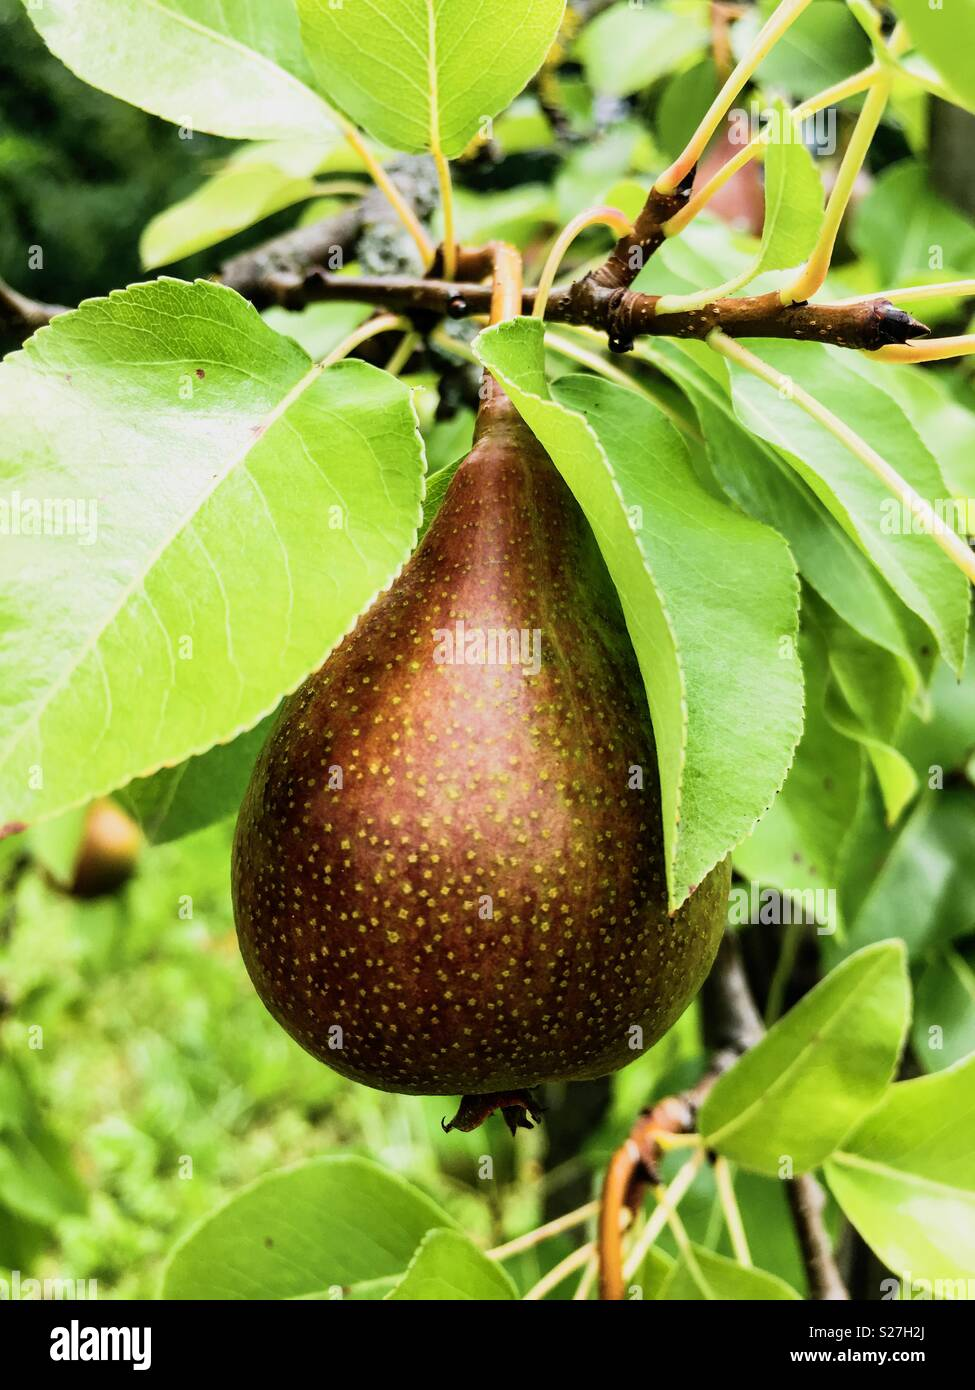 Pear on the tree - Stock Image